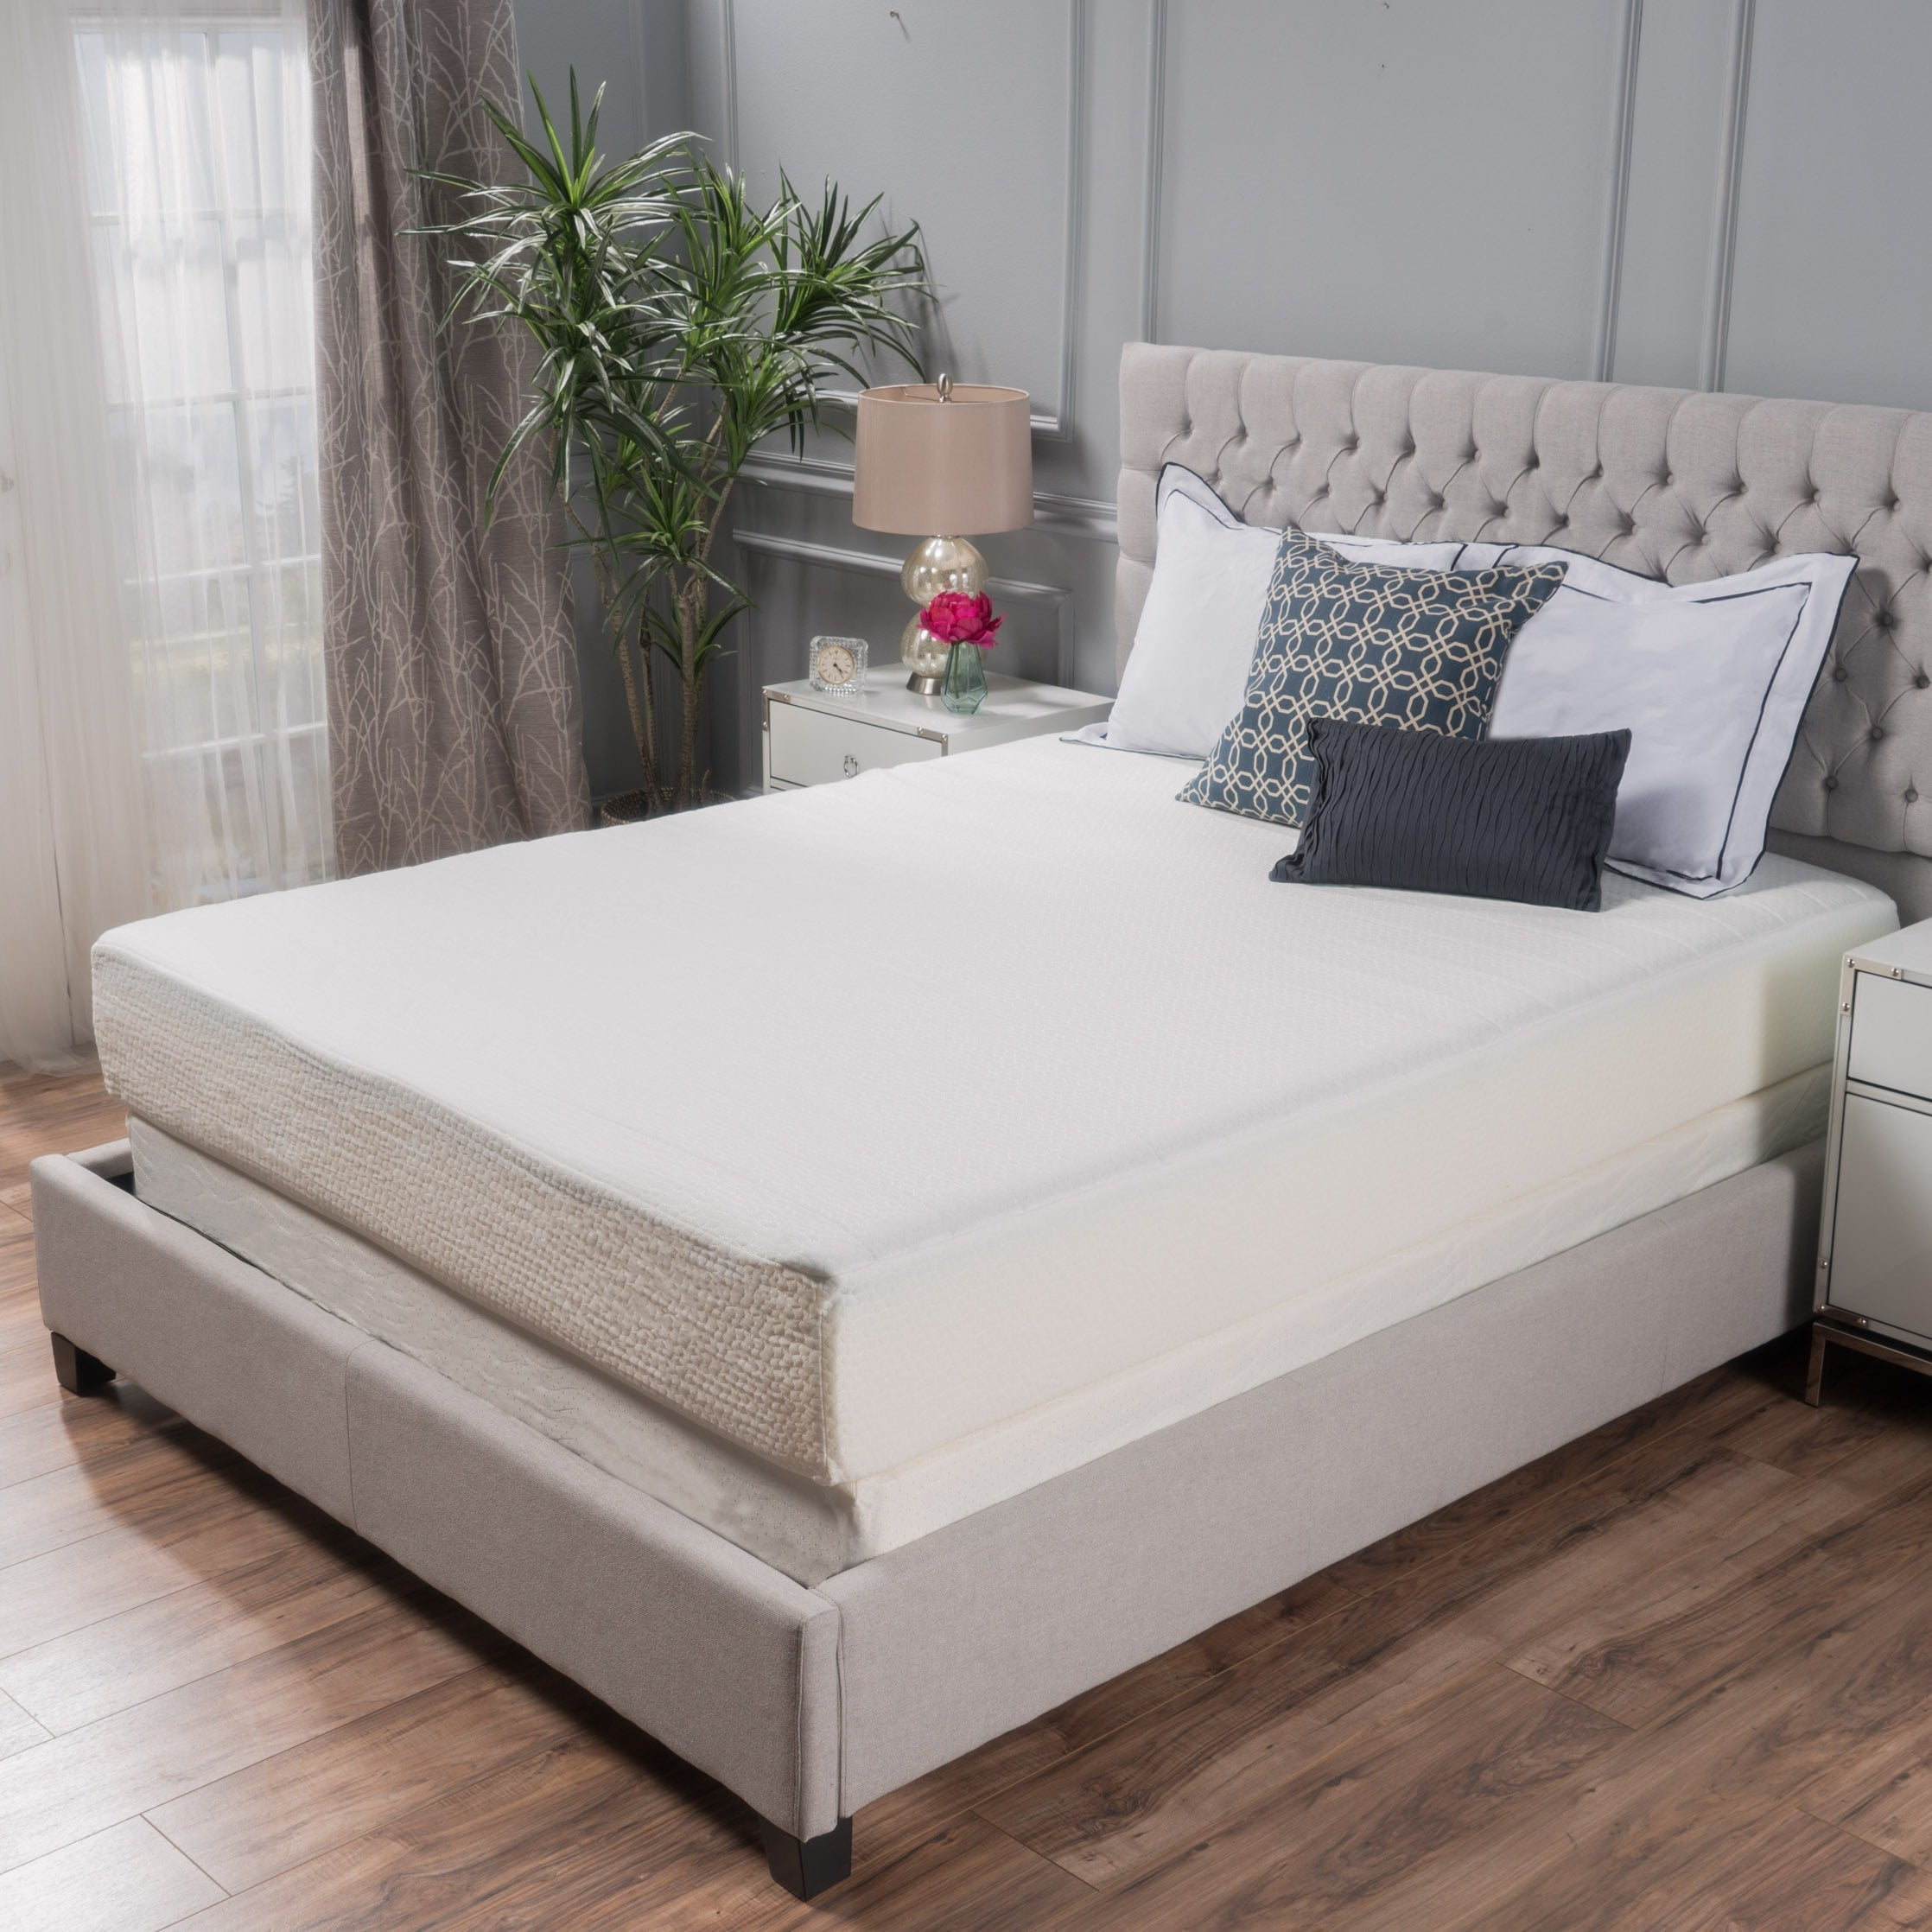 Choice 10-inch King-size Memory Foam Mattress by Christop...